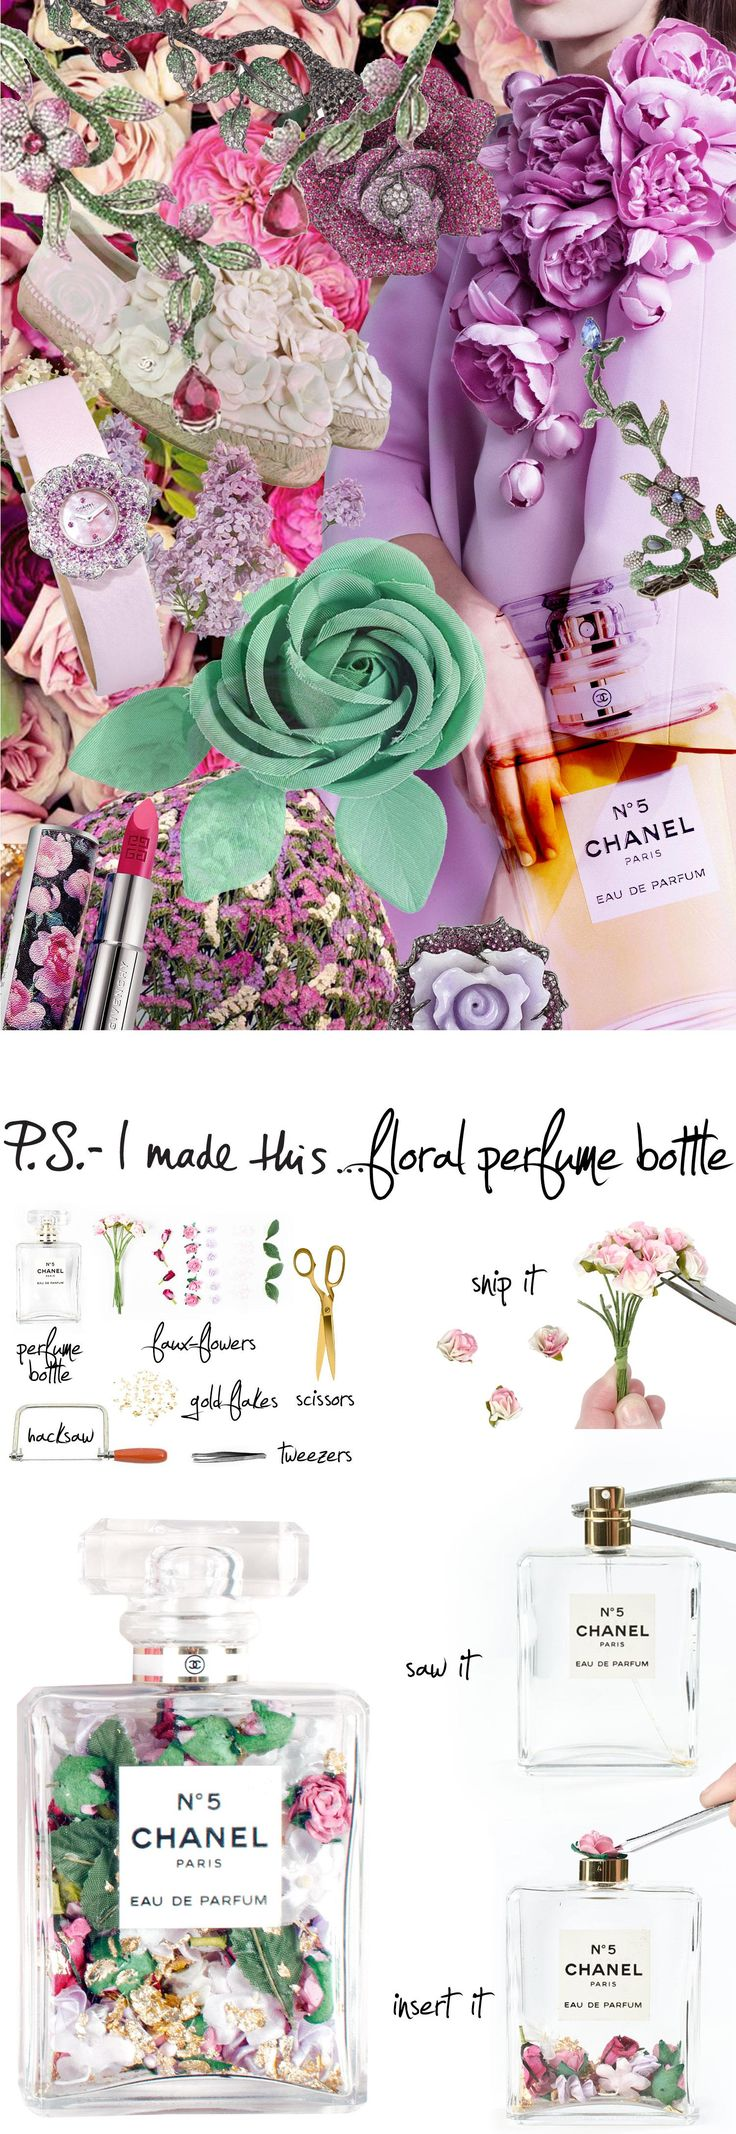 Make use of your empty perfume bottles with this DIY.